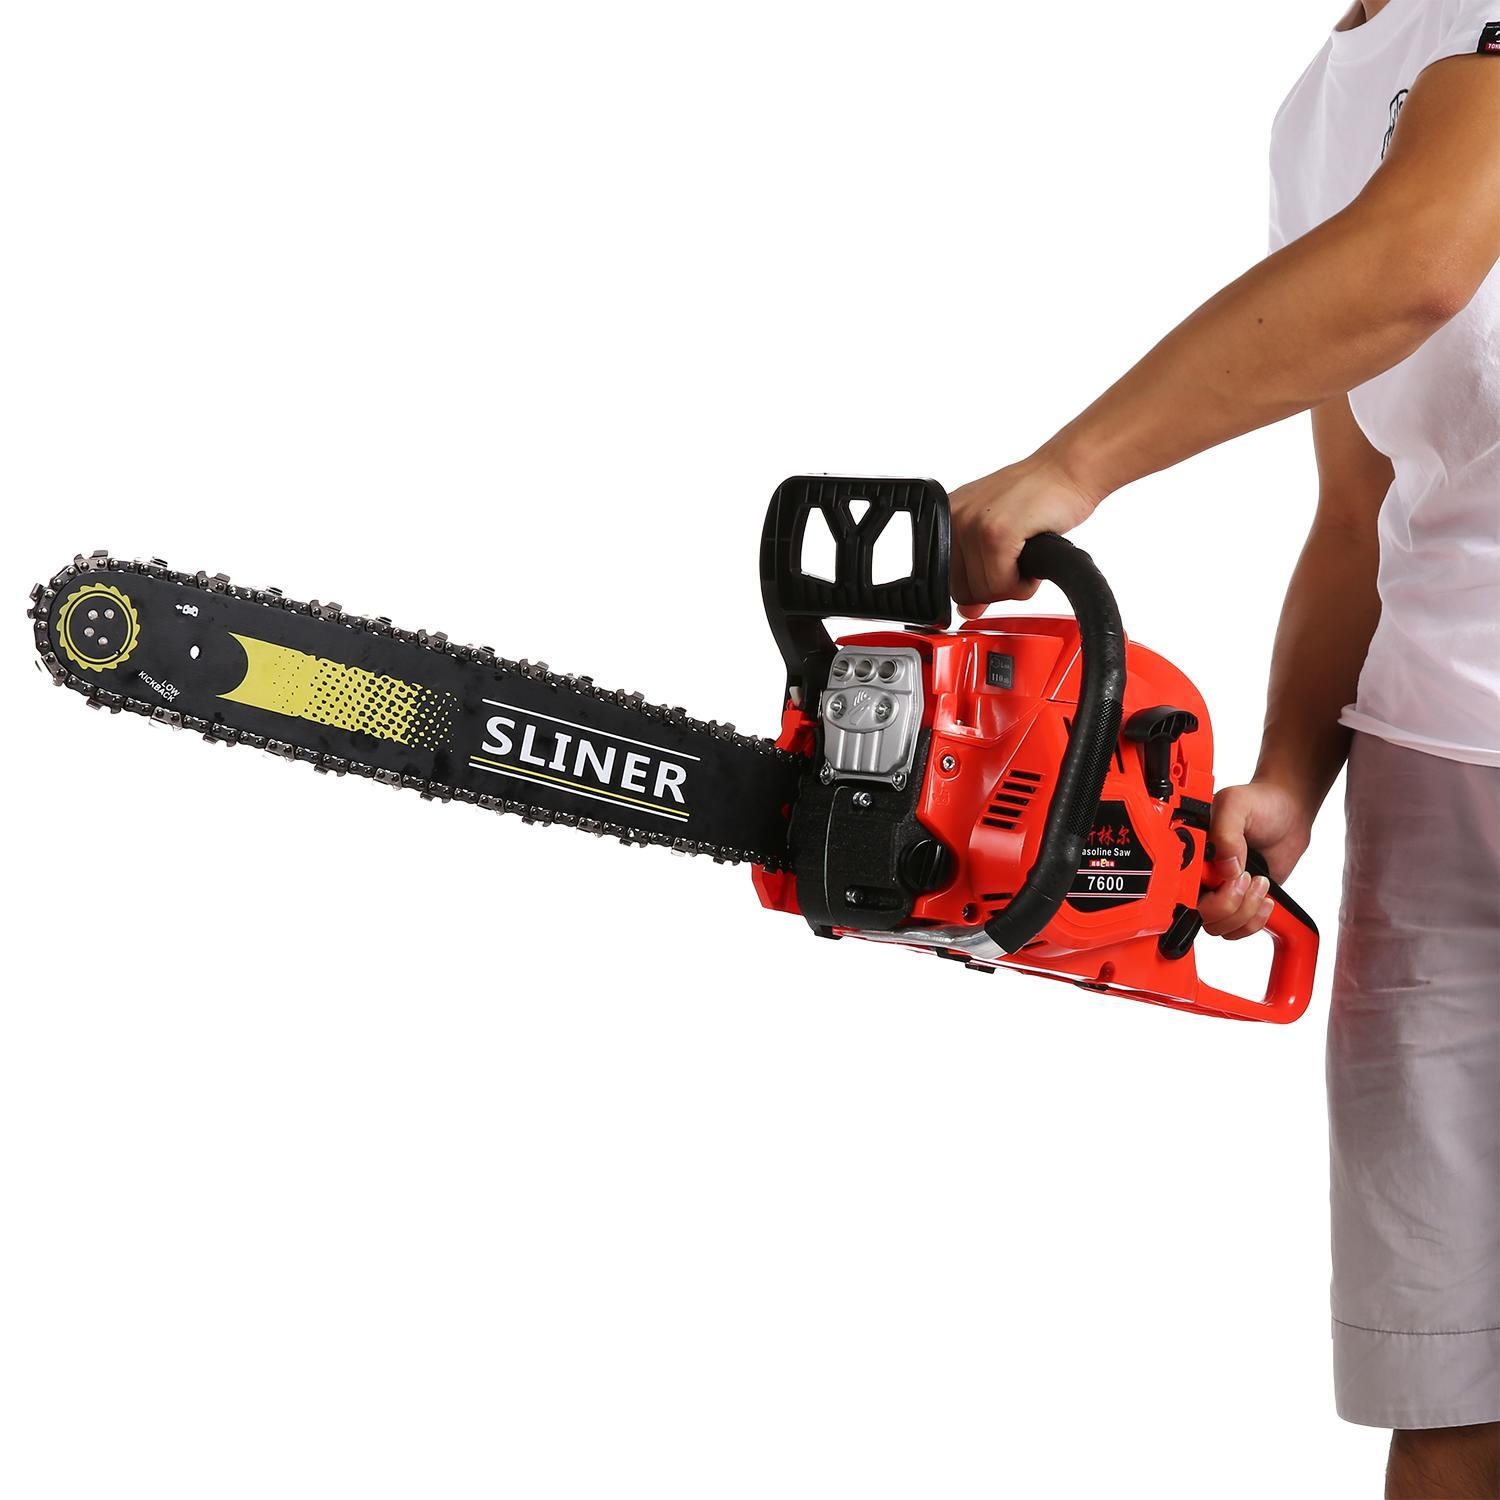 3.4HP 58cc 20inch Petrol Gas Chainsaw  Cutting Wood Easy Start Gasoline saw CYBST